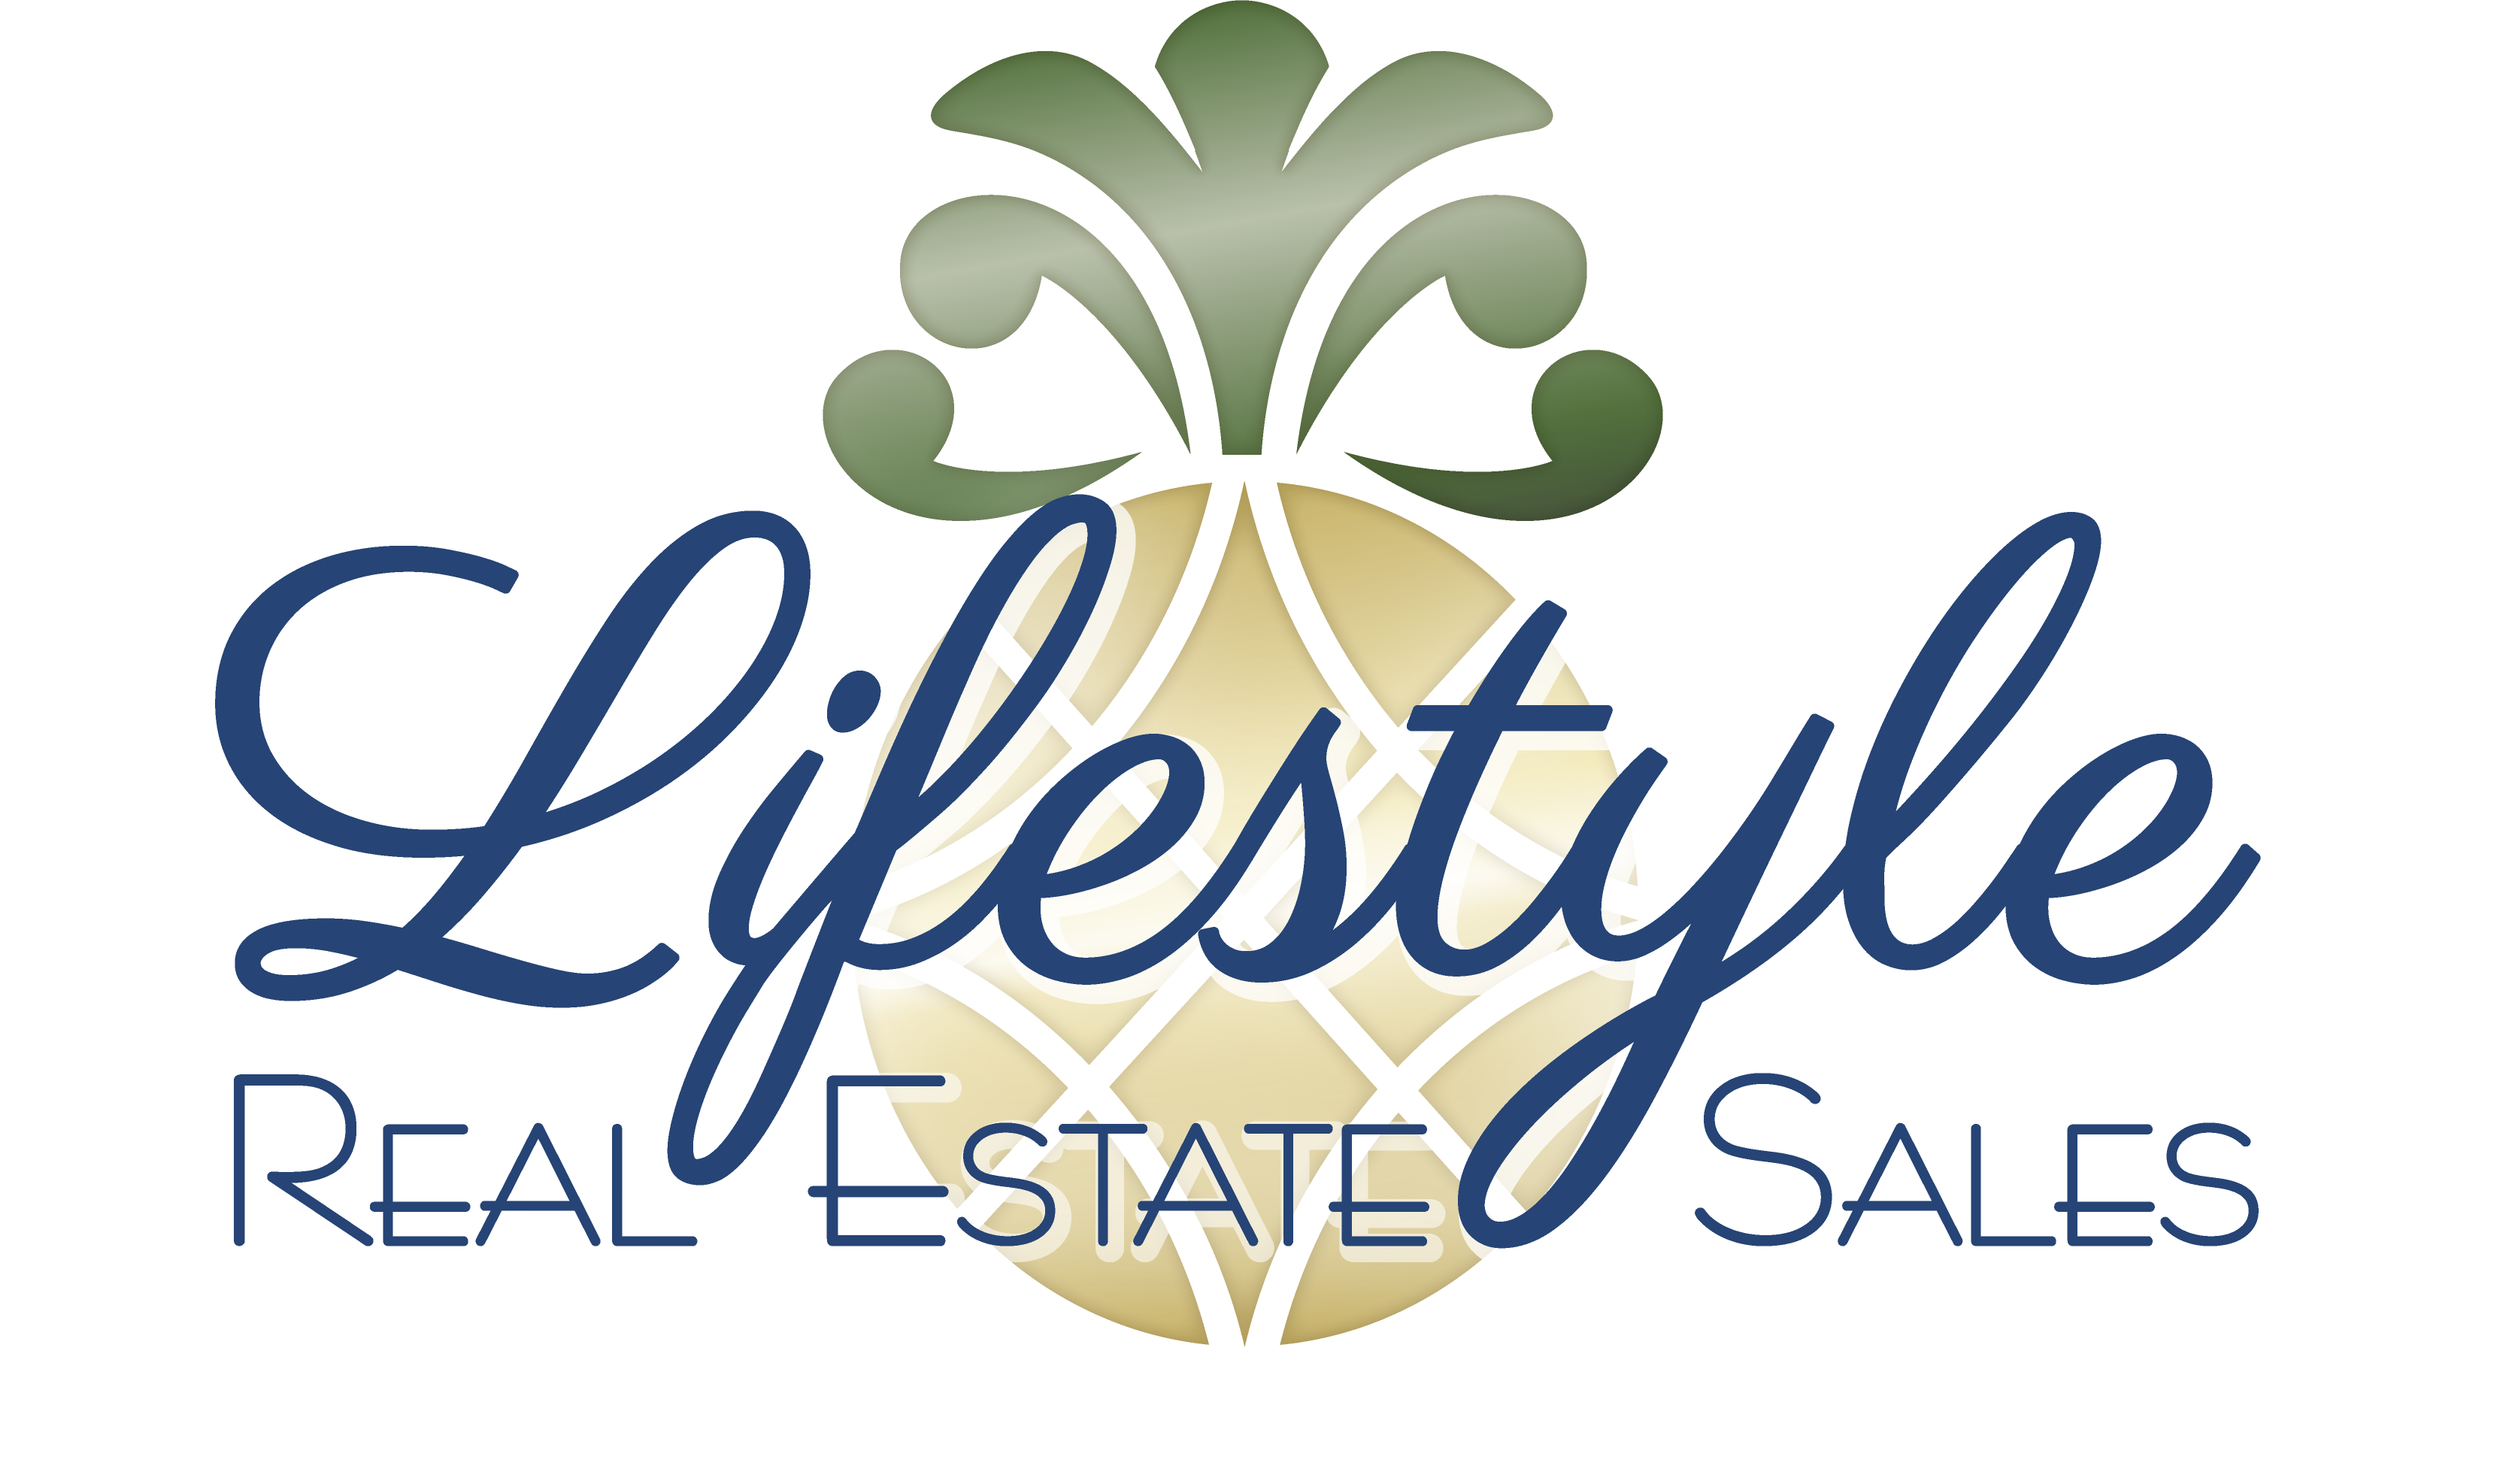 Lifestyle Real Estate Sale Logo with Pineapple icon